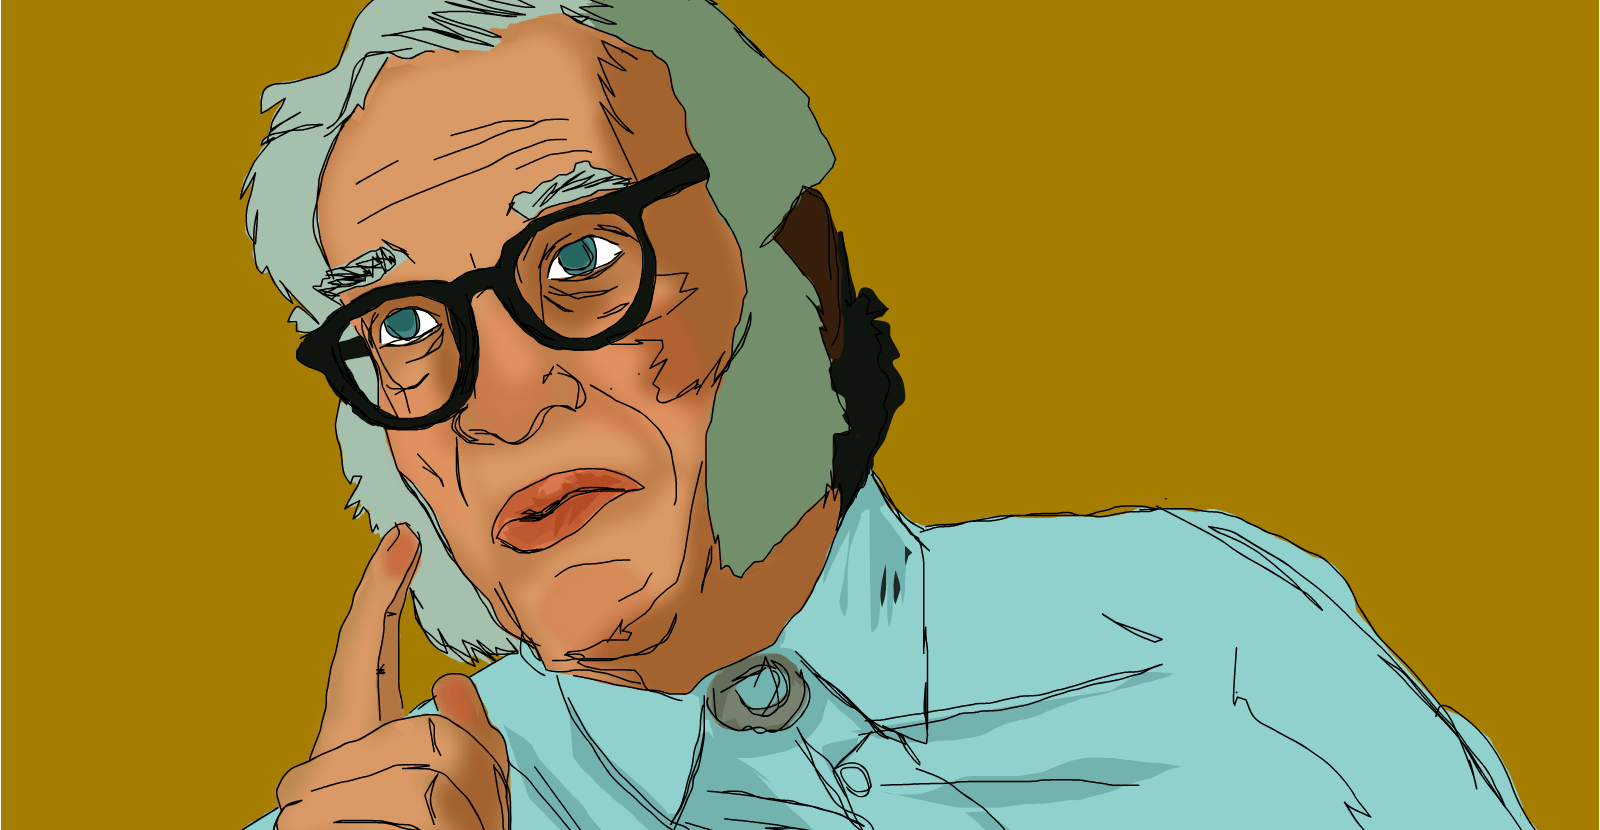 """the life and writings of isaac asimov How isaac asimov wrote 500+ books (or """"3 writing habits for long-term success"""") words came out as slowly as liquid petroleum dripped out of decaying dinosaur bones each idea or turn of phrase was scrutinized, re-scrutinized, edited, then deleted."""